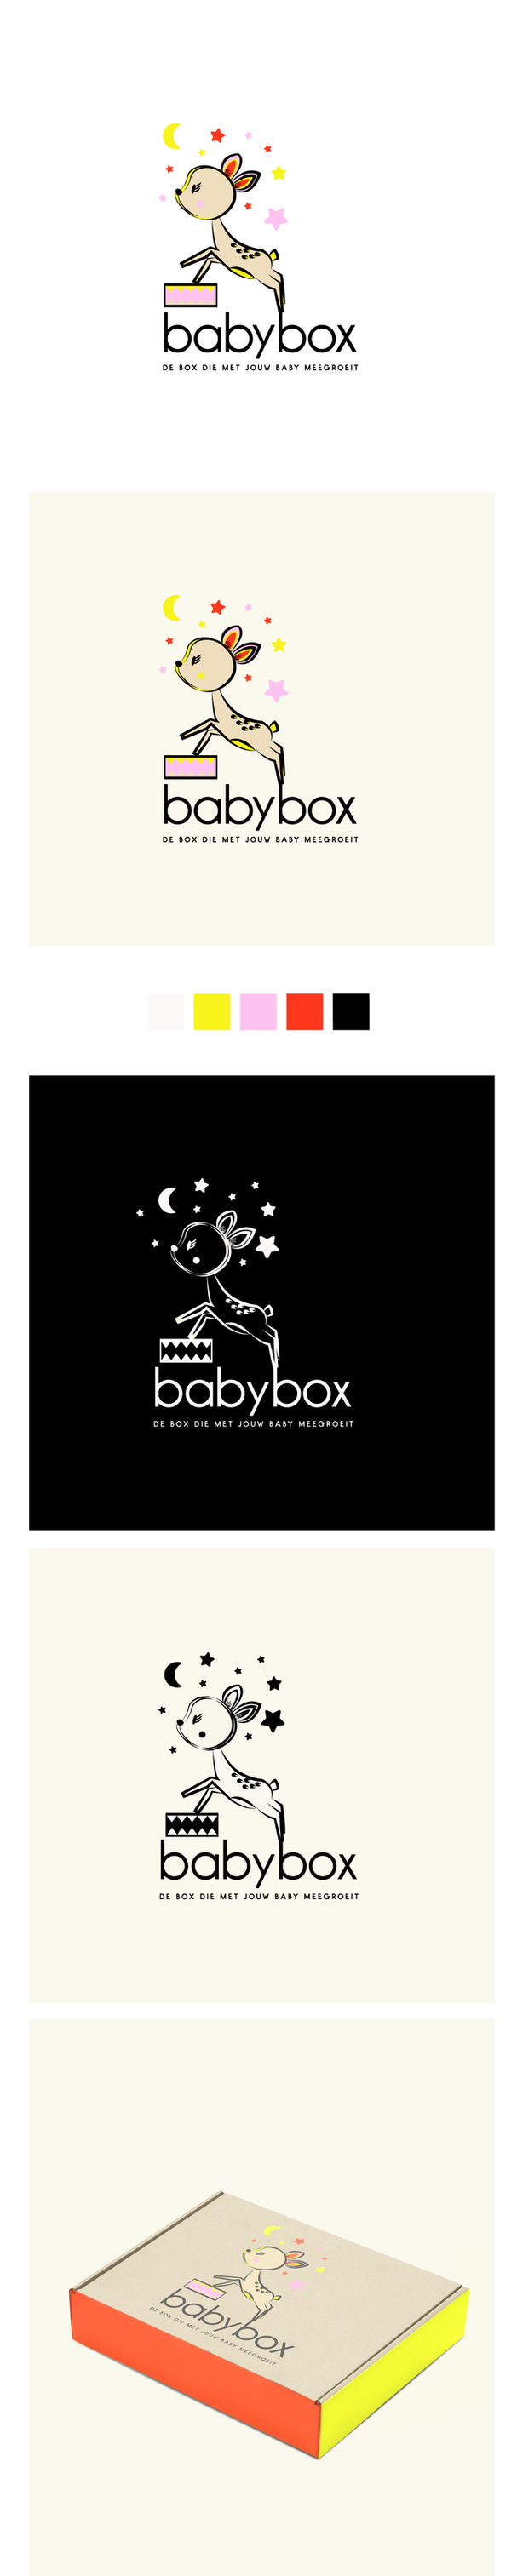 babybox logo design